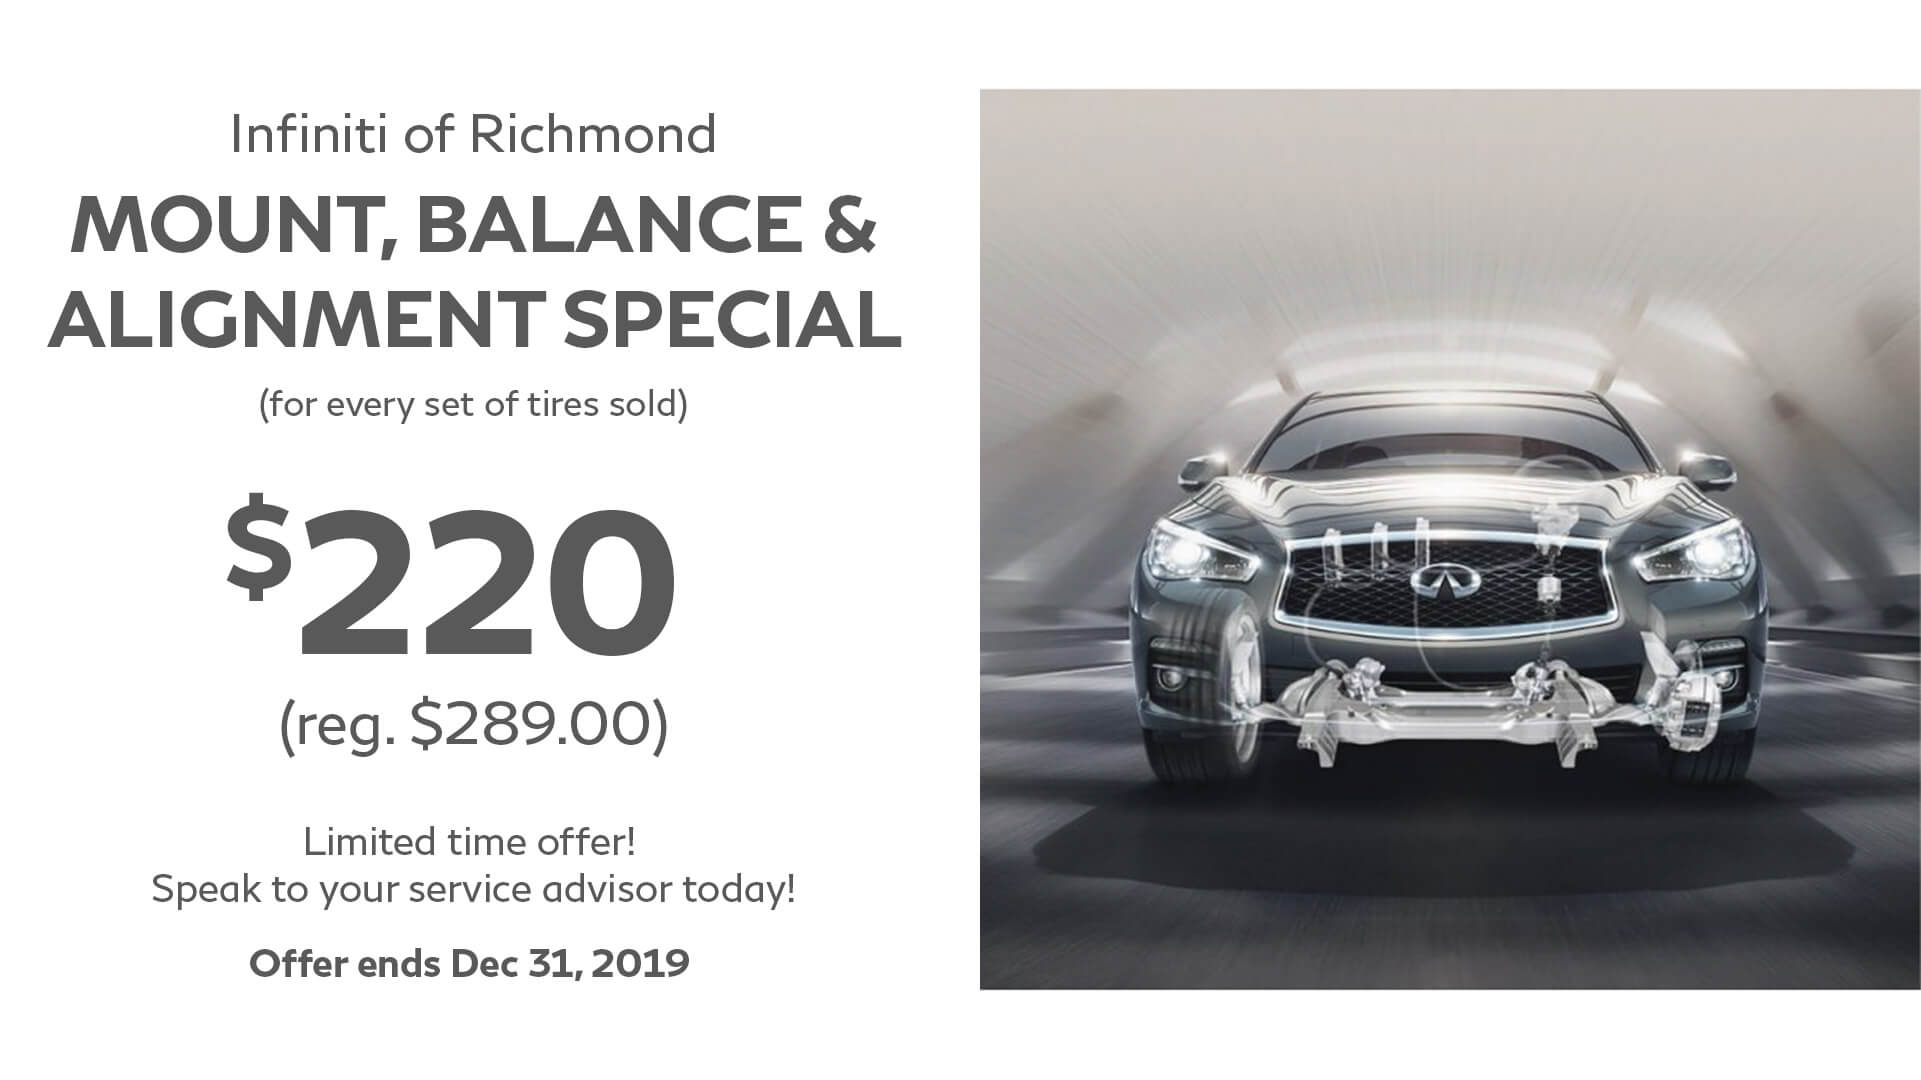 4 wheel alignment special at Infiniti of Richmond